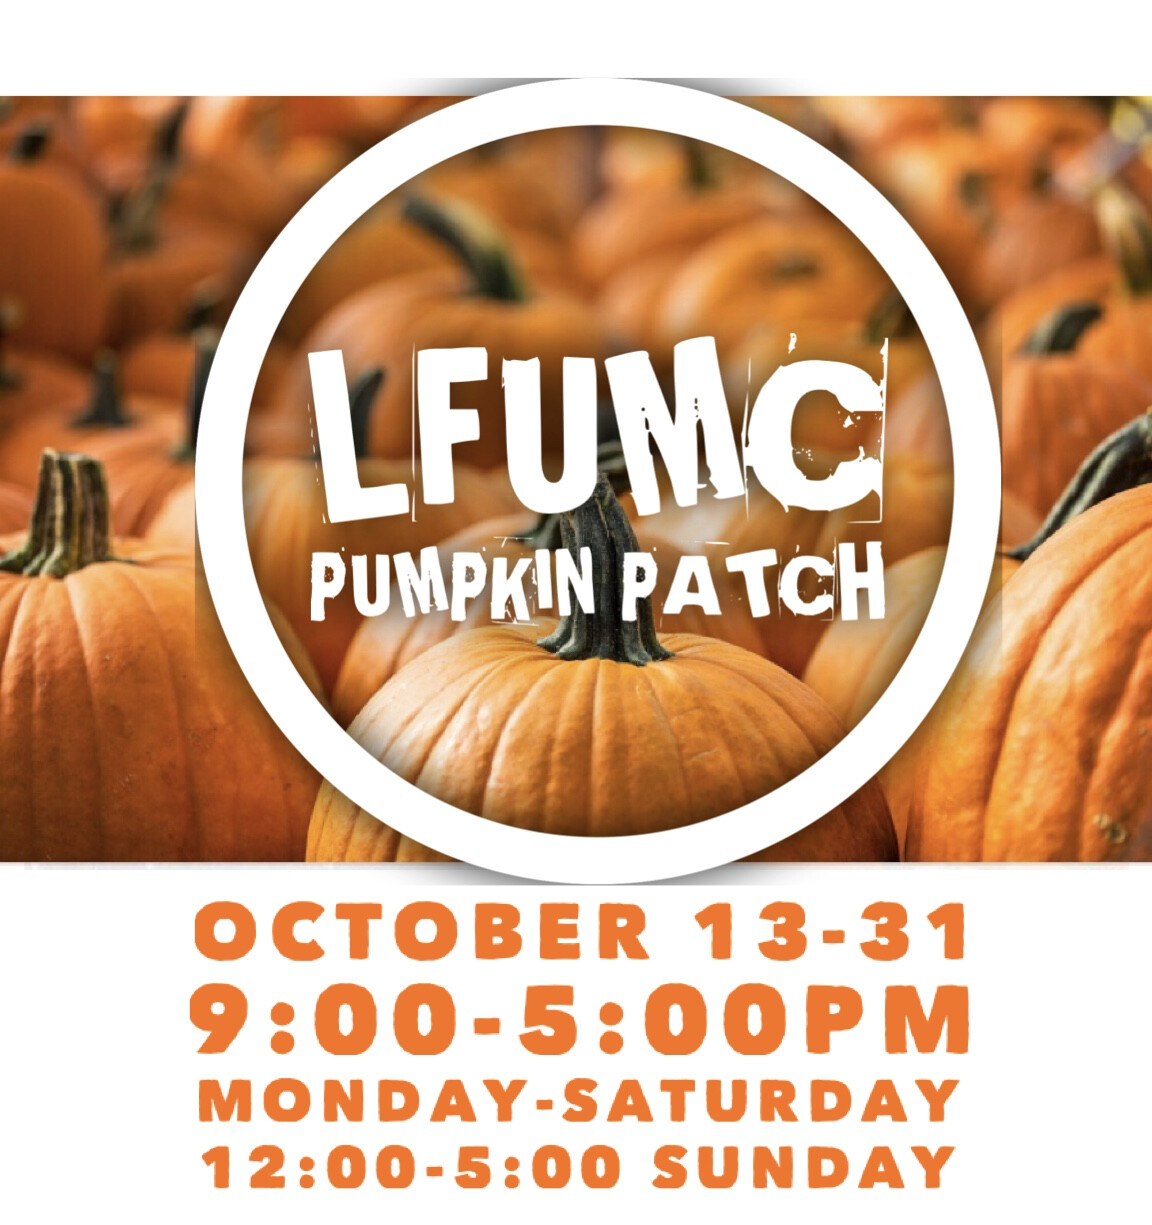 PUMPKIN PATCH IS BACK!